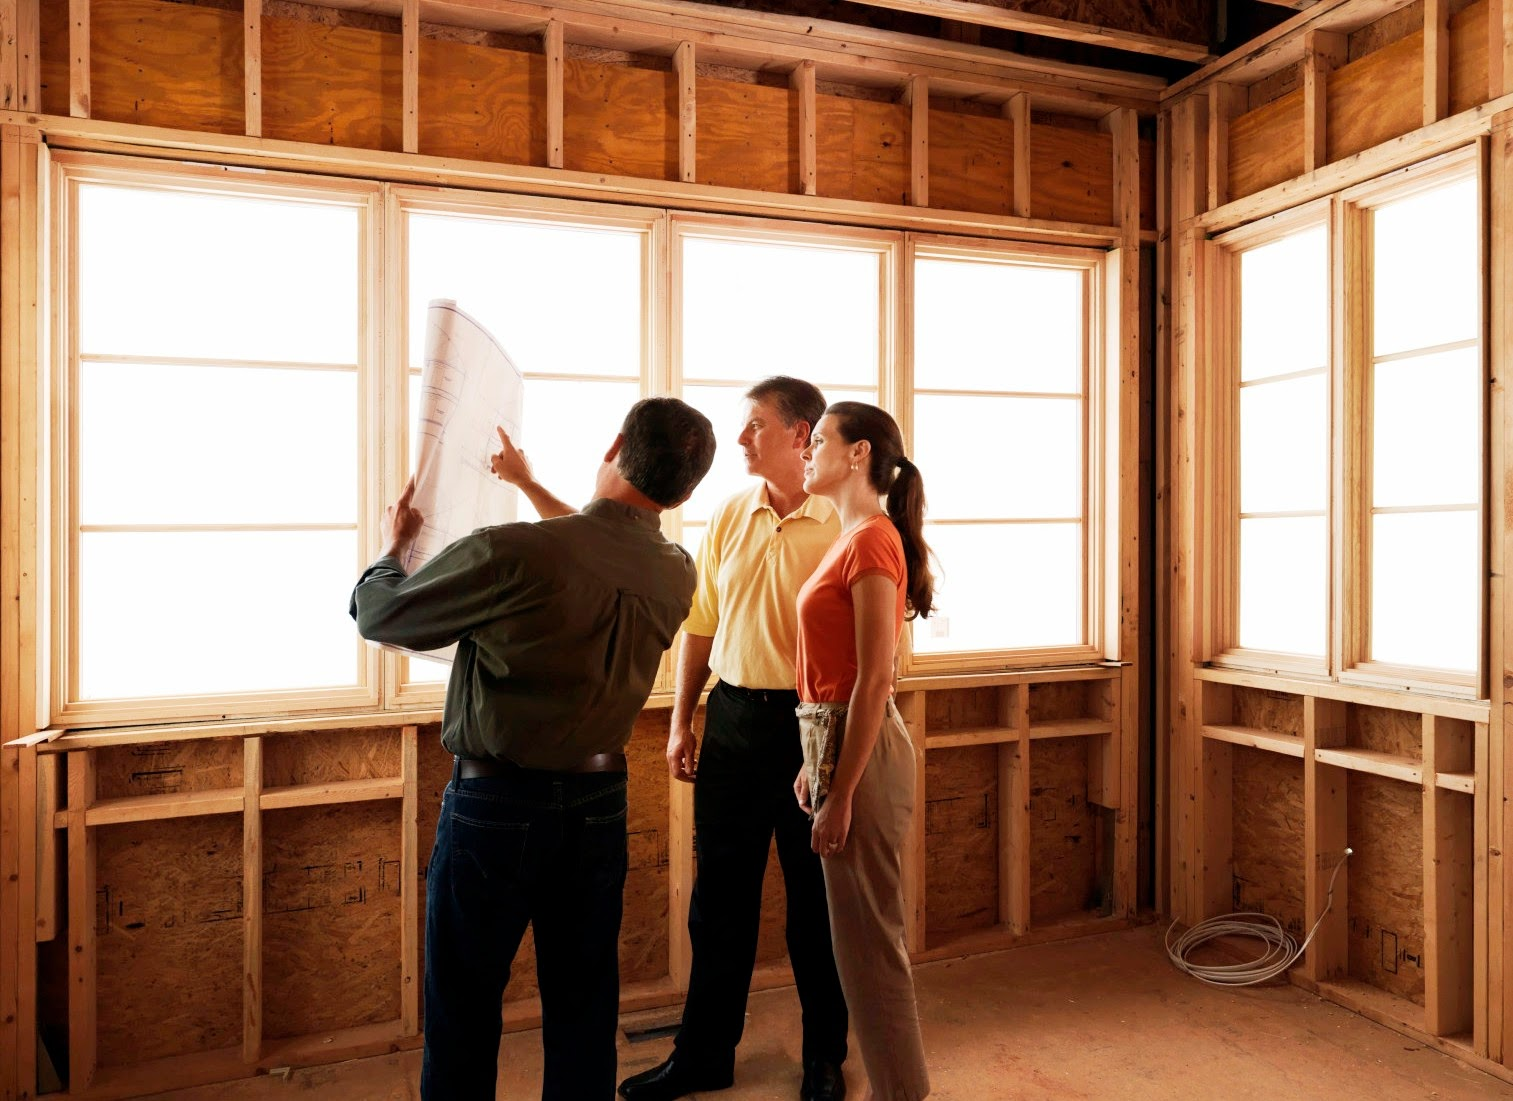 Best Ways to Fund Home Improvements